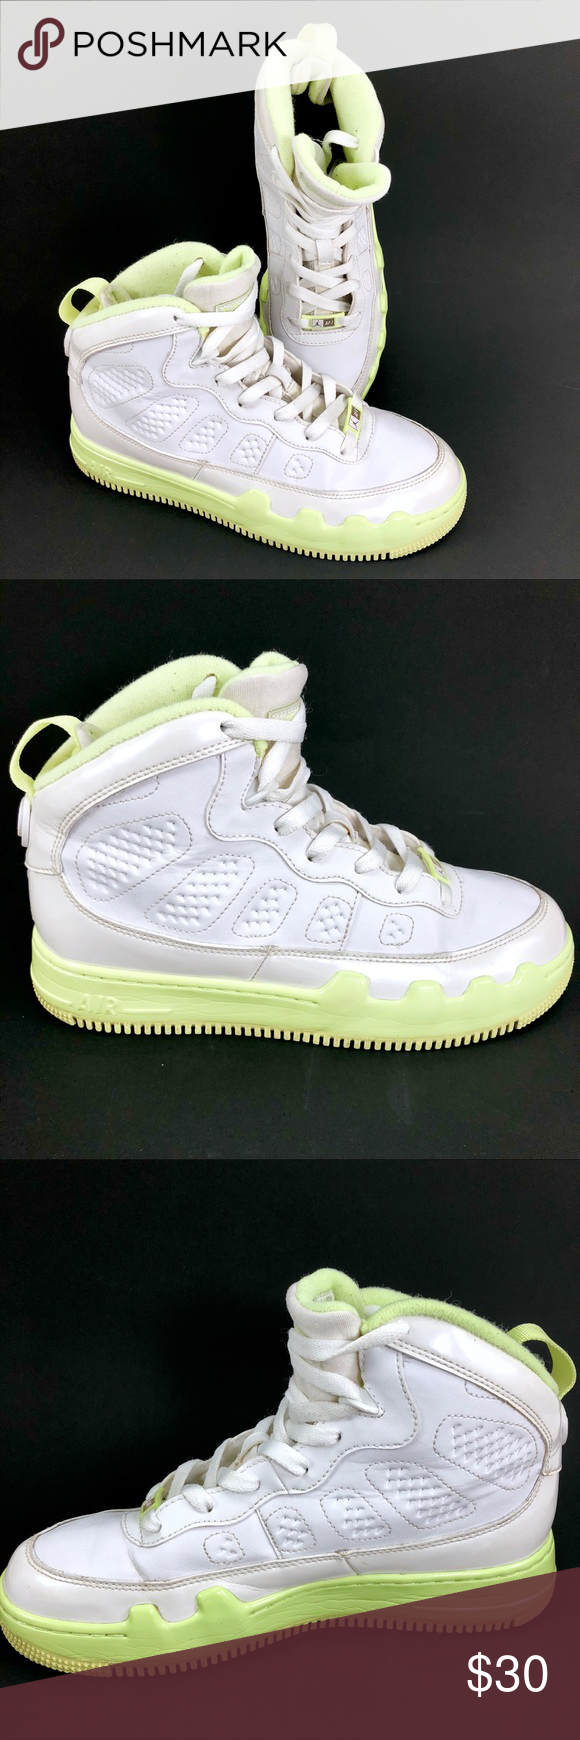 4b90e9cdcf2fba Nike Air Jordan Fusion 9 GIRLS 6y Youth AJF Lime Kids shoe size 6. Nike